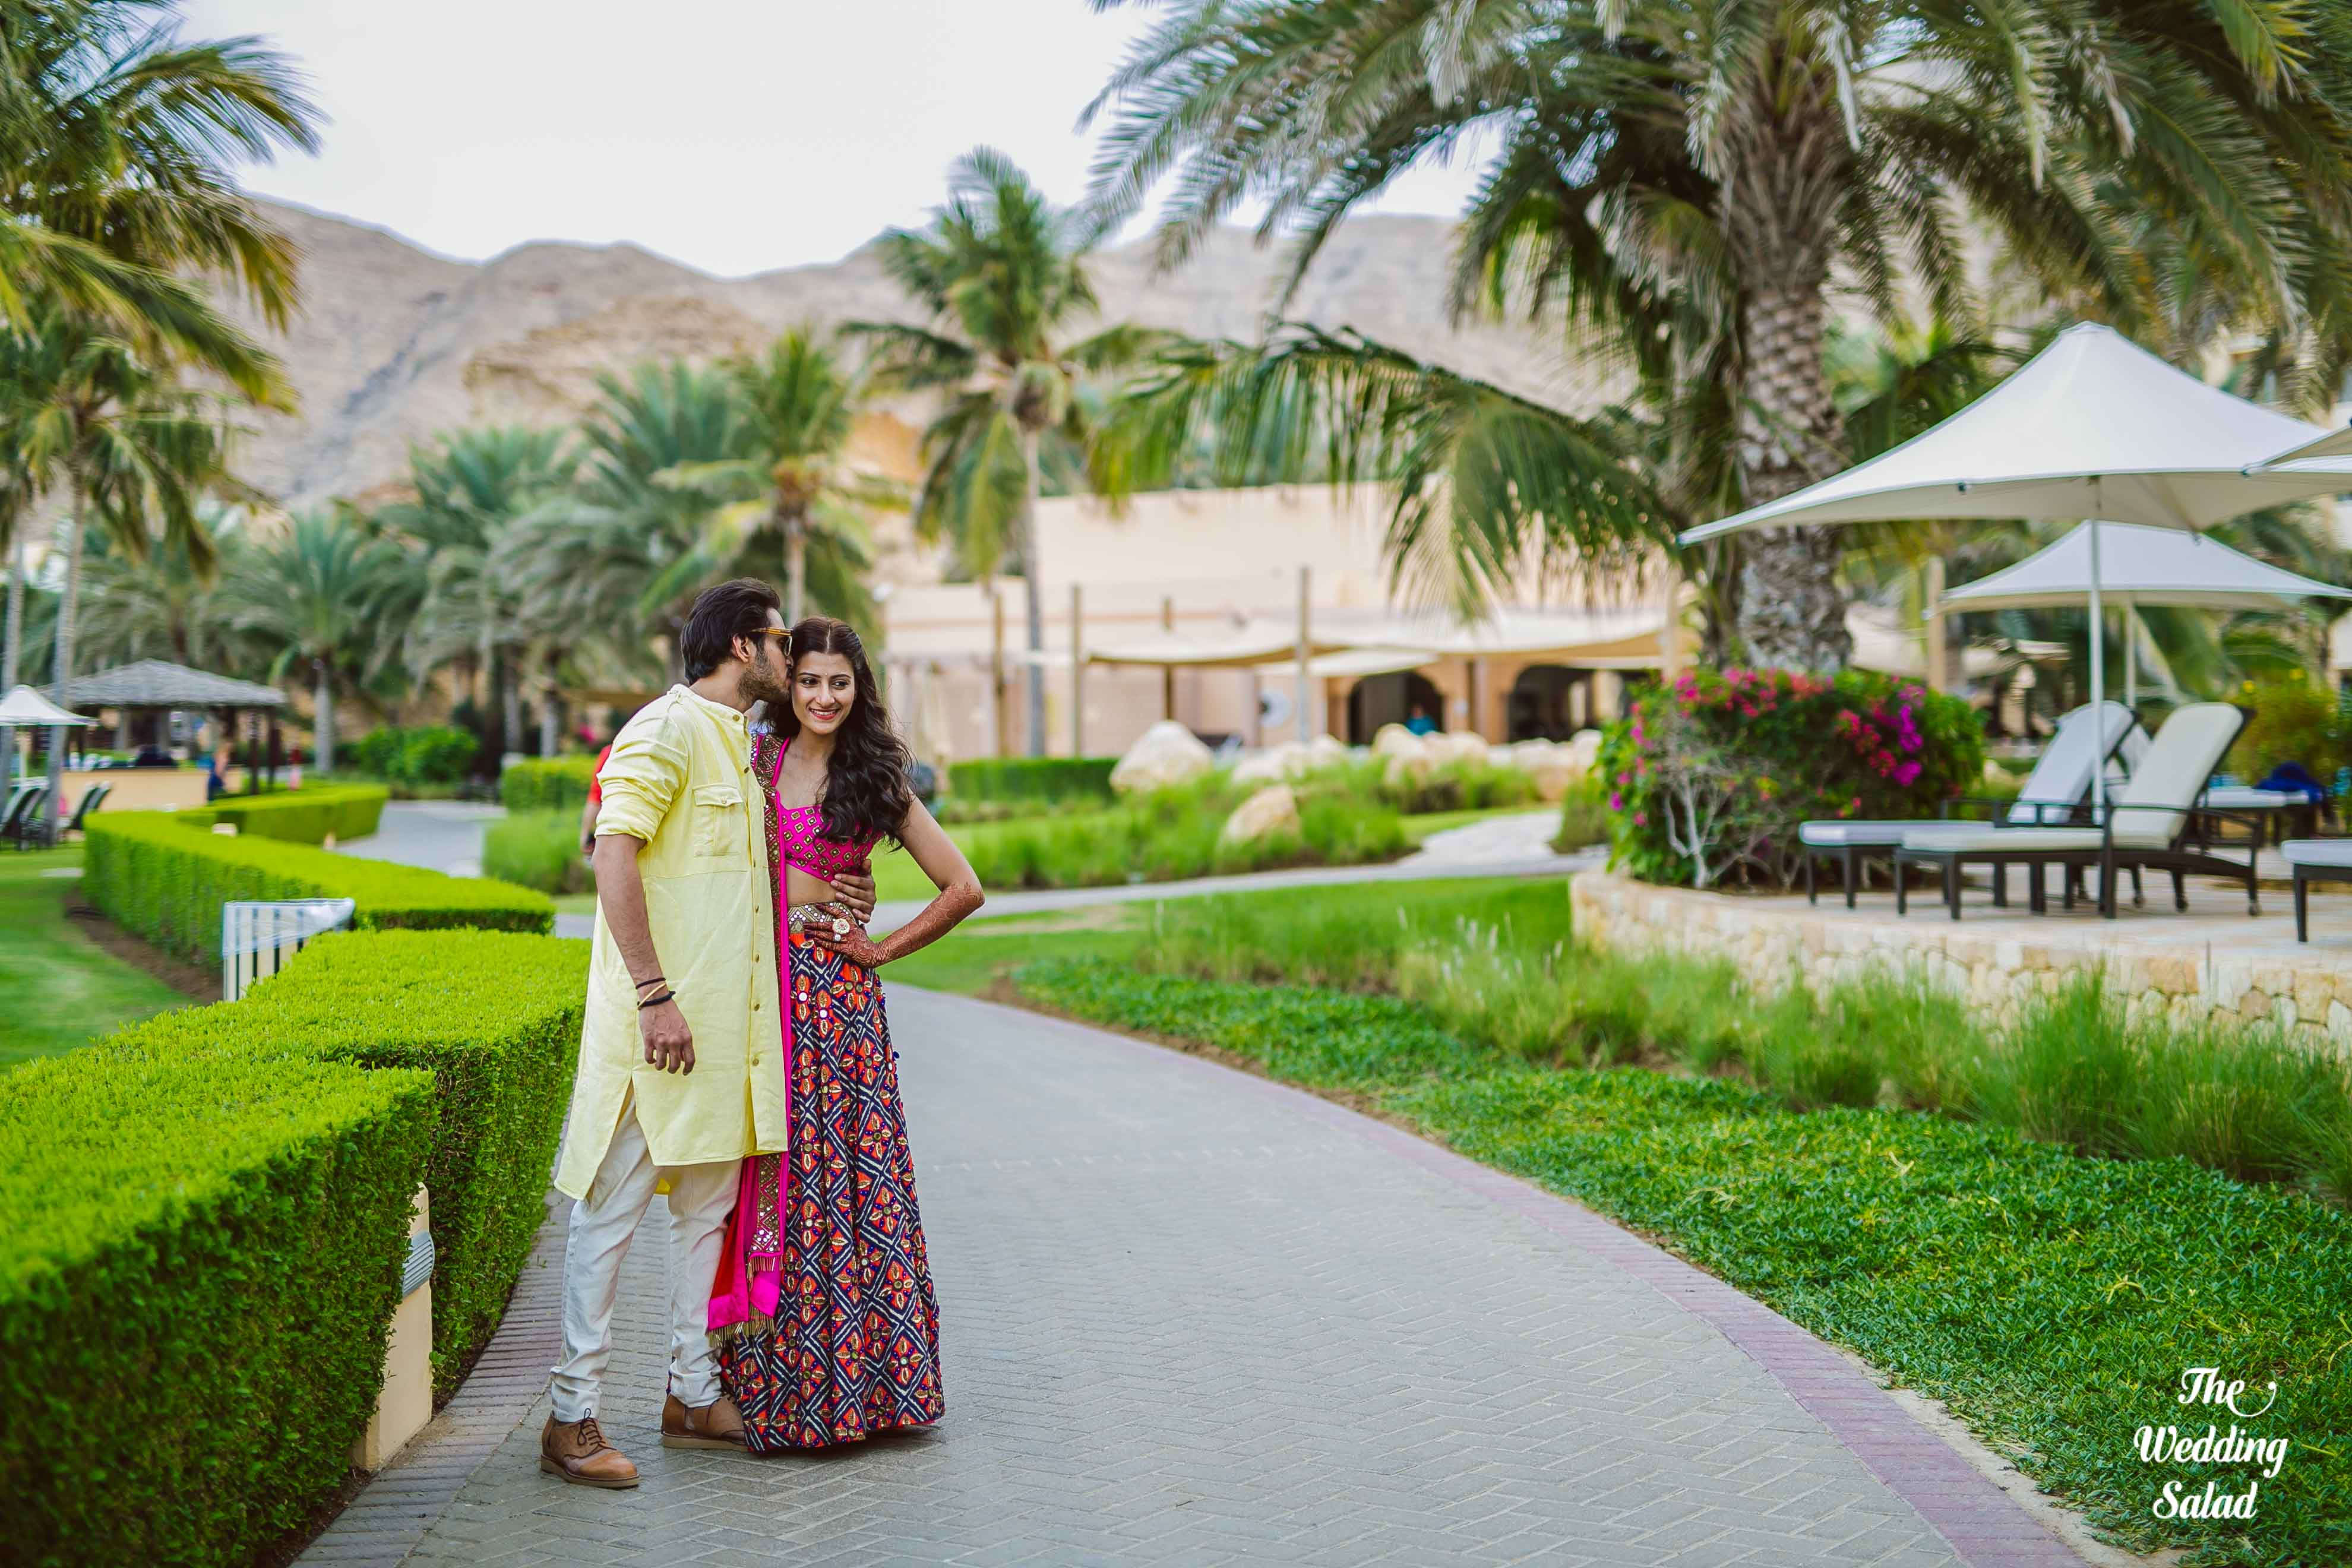 the romantic couple!:the wedding salad, manish malhotra, arpita mehta, sabyasachi couture pvt ltd